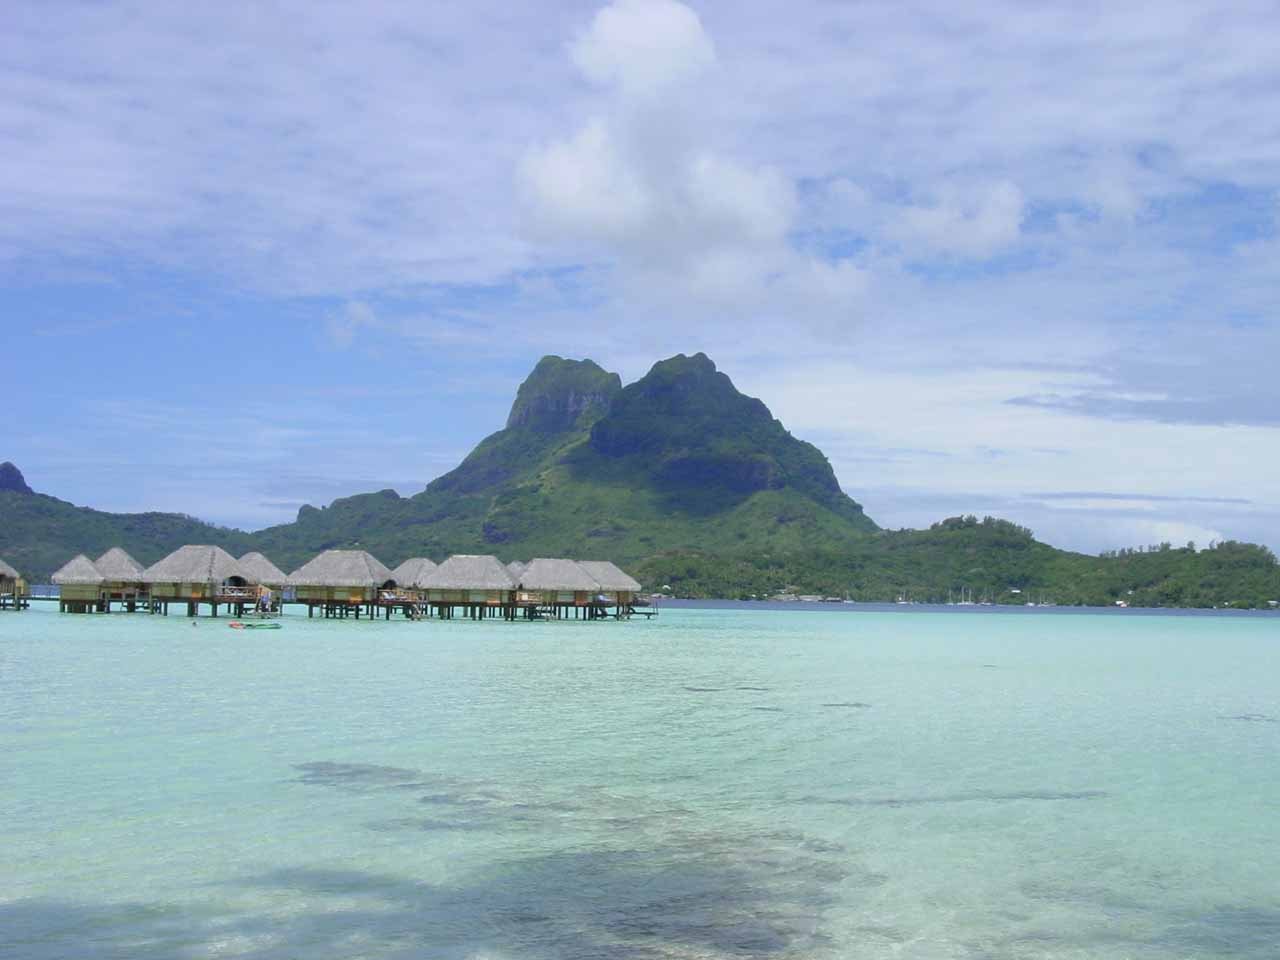 Overwater bungalows at the Bora Bora Pearl